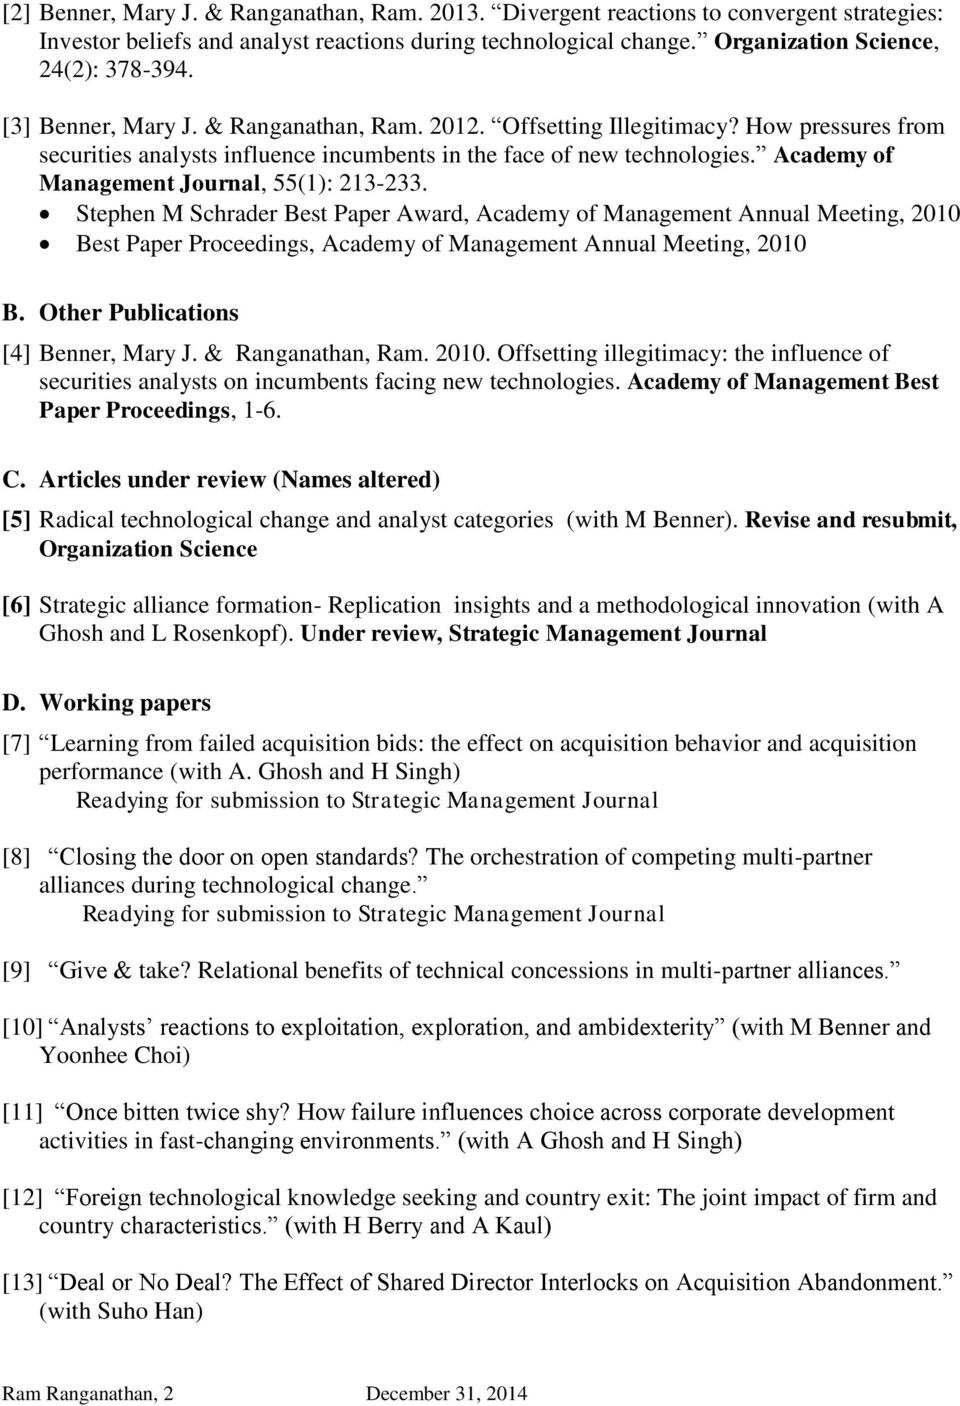 Academy of Management Journal, 55(1): 213-233. Stephen M Schrader Best Paper Award, Academy of Management Annual Meeting, 2010 Best Paper Proceedings, Academy of Management Annual Meeting, 2010 B.